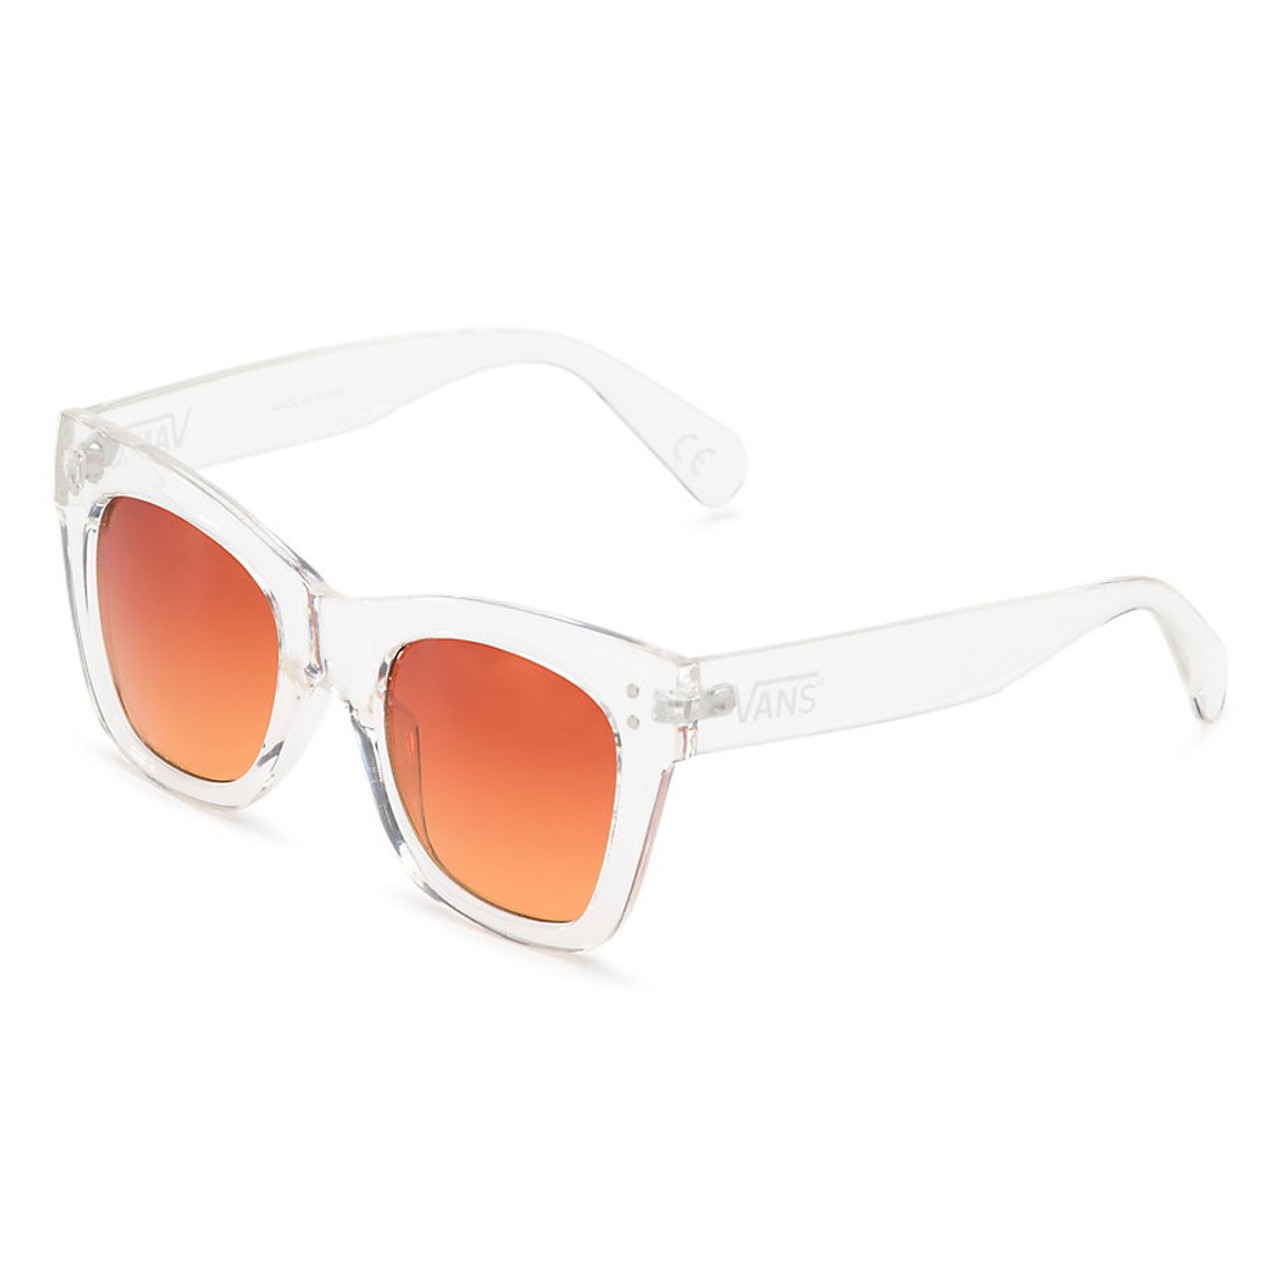 b2bc54cdf69c2 Vans Women s Sunglasses - Sunny Dazy - Clear Sunset Gradient - Surf and Dirt